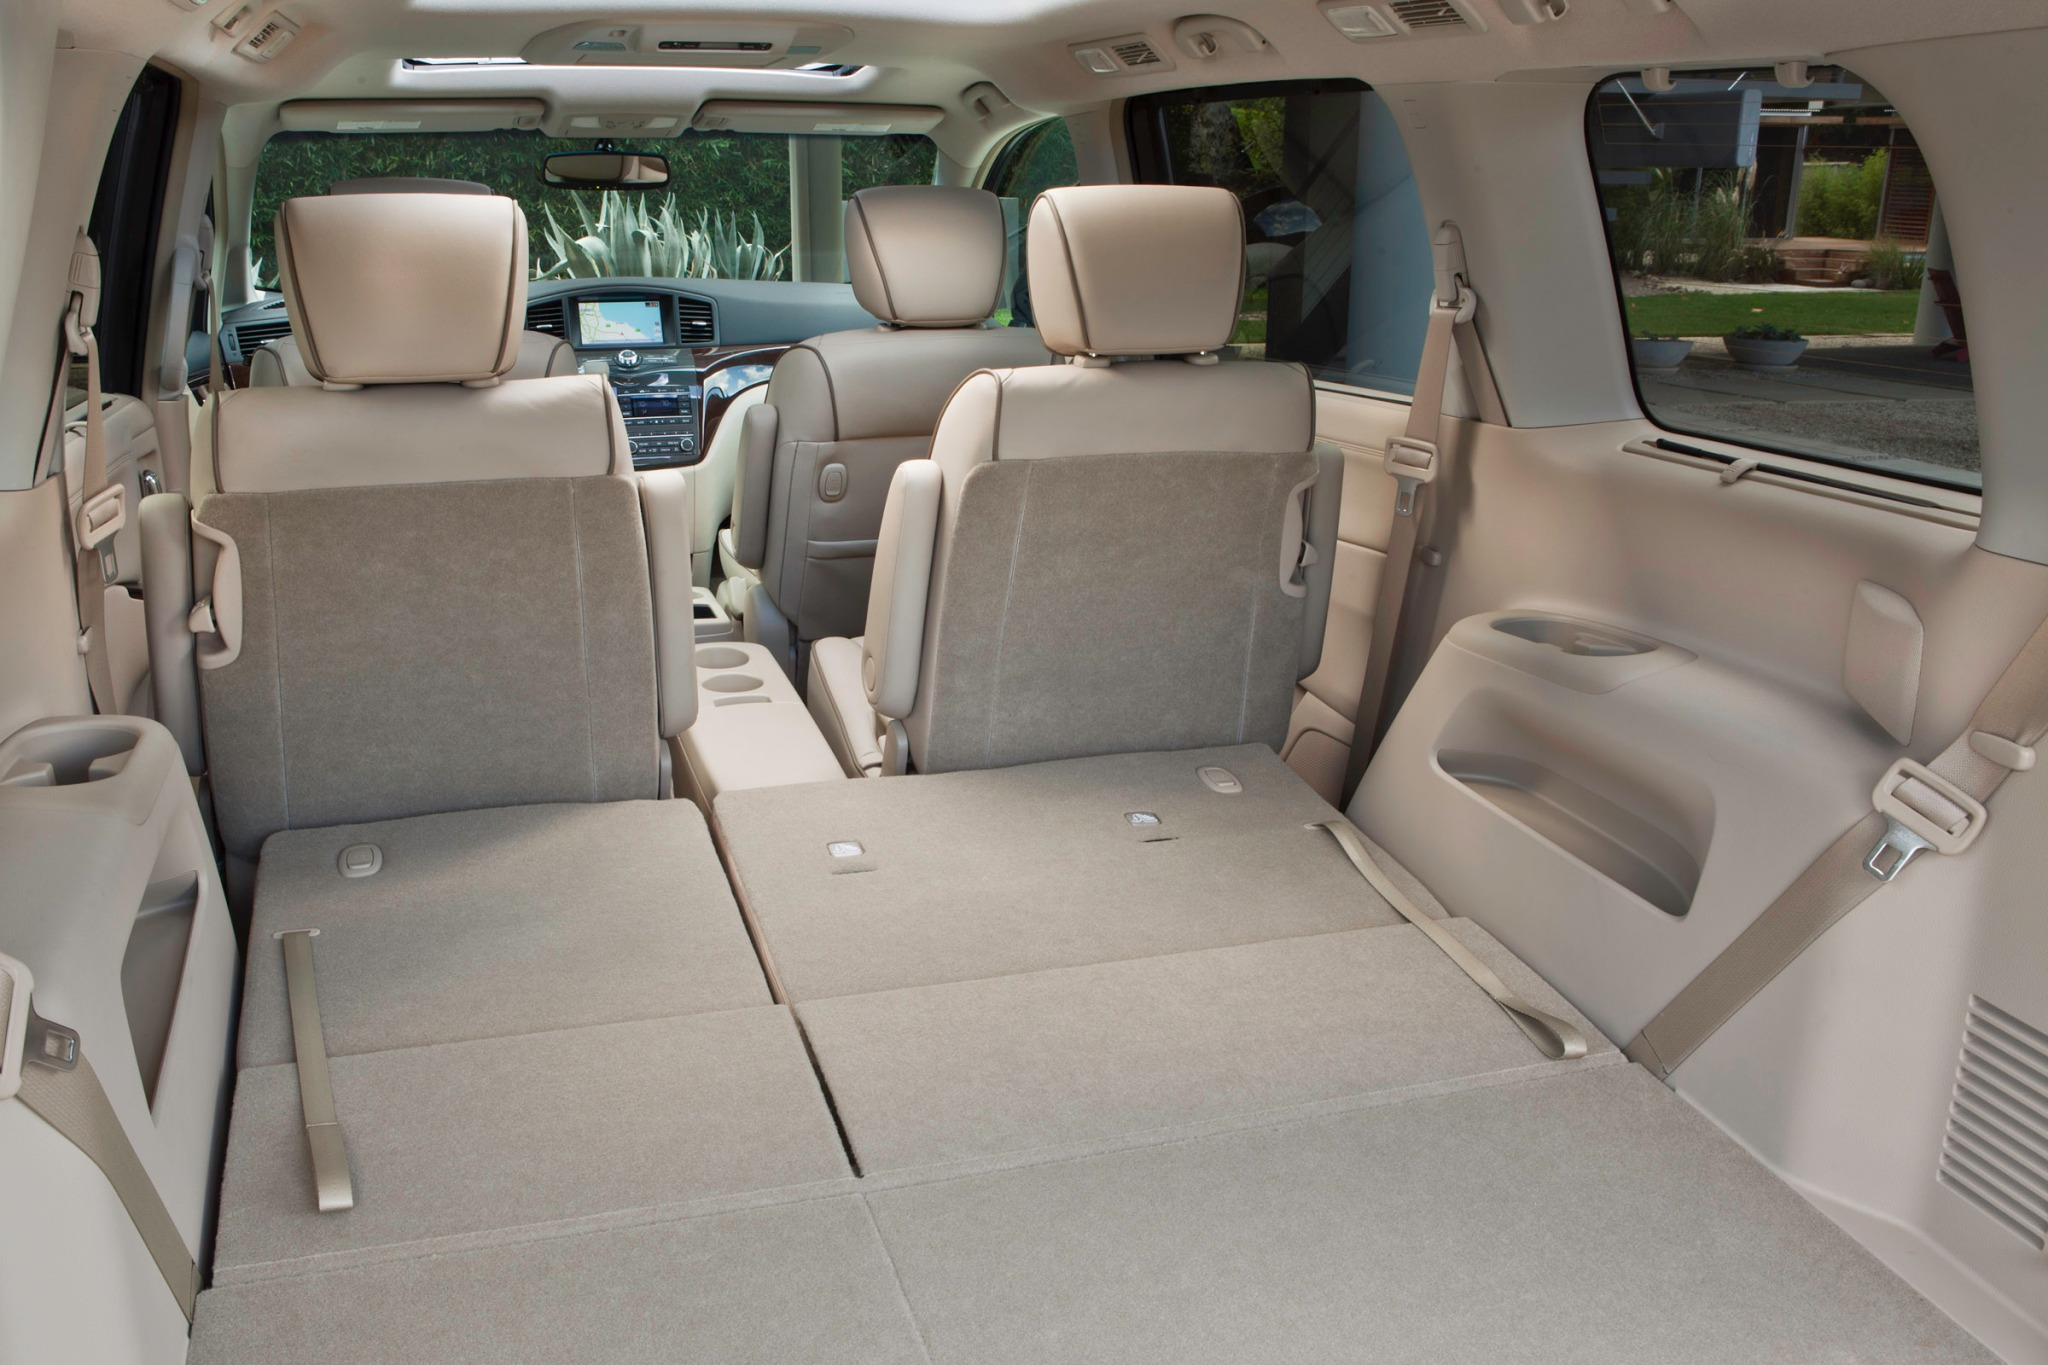 2012 Nissan Quest LE Pass interior #8